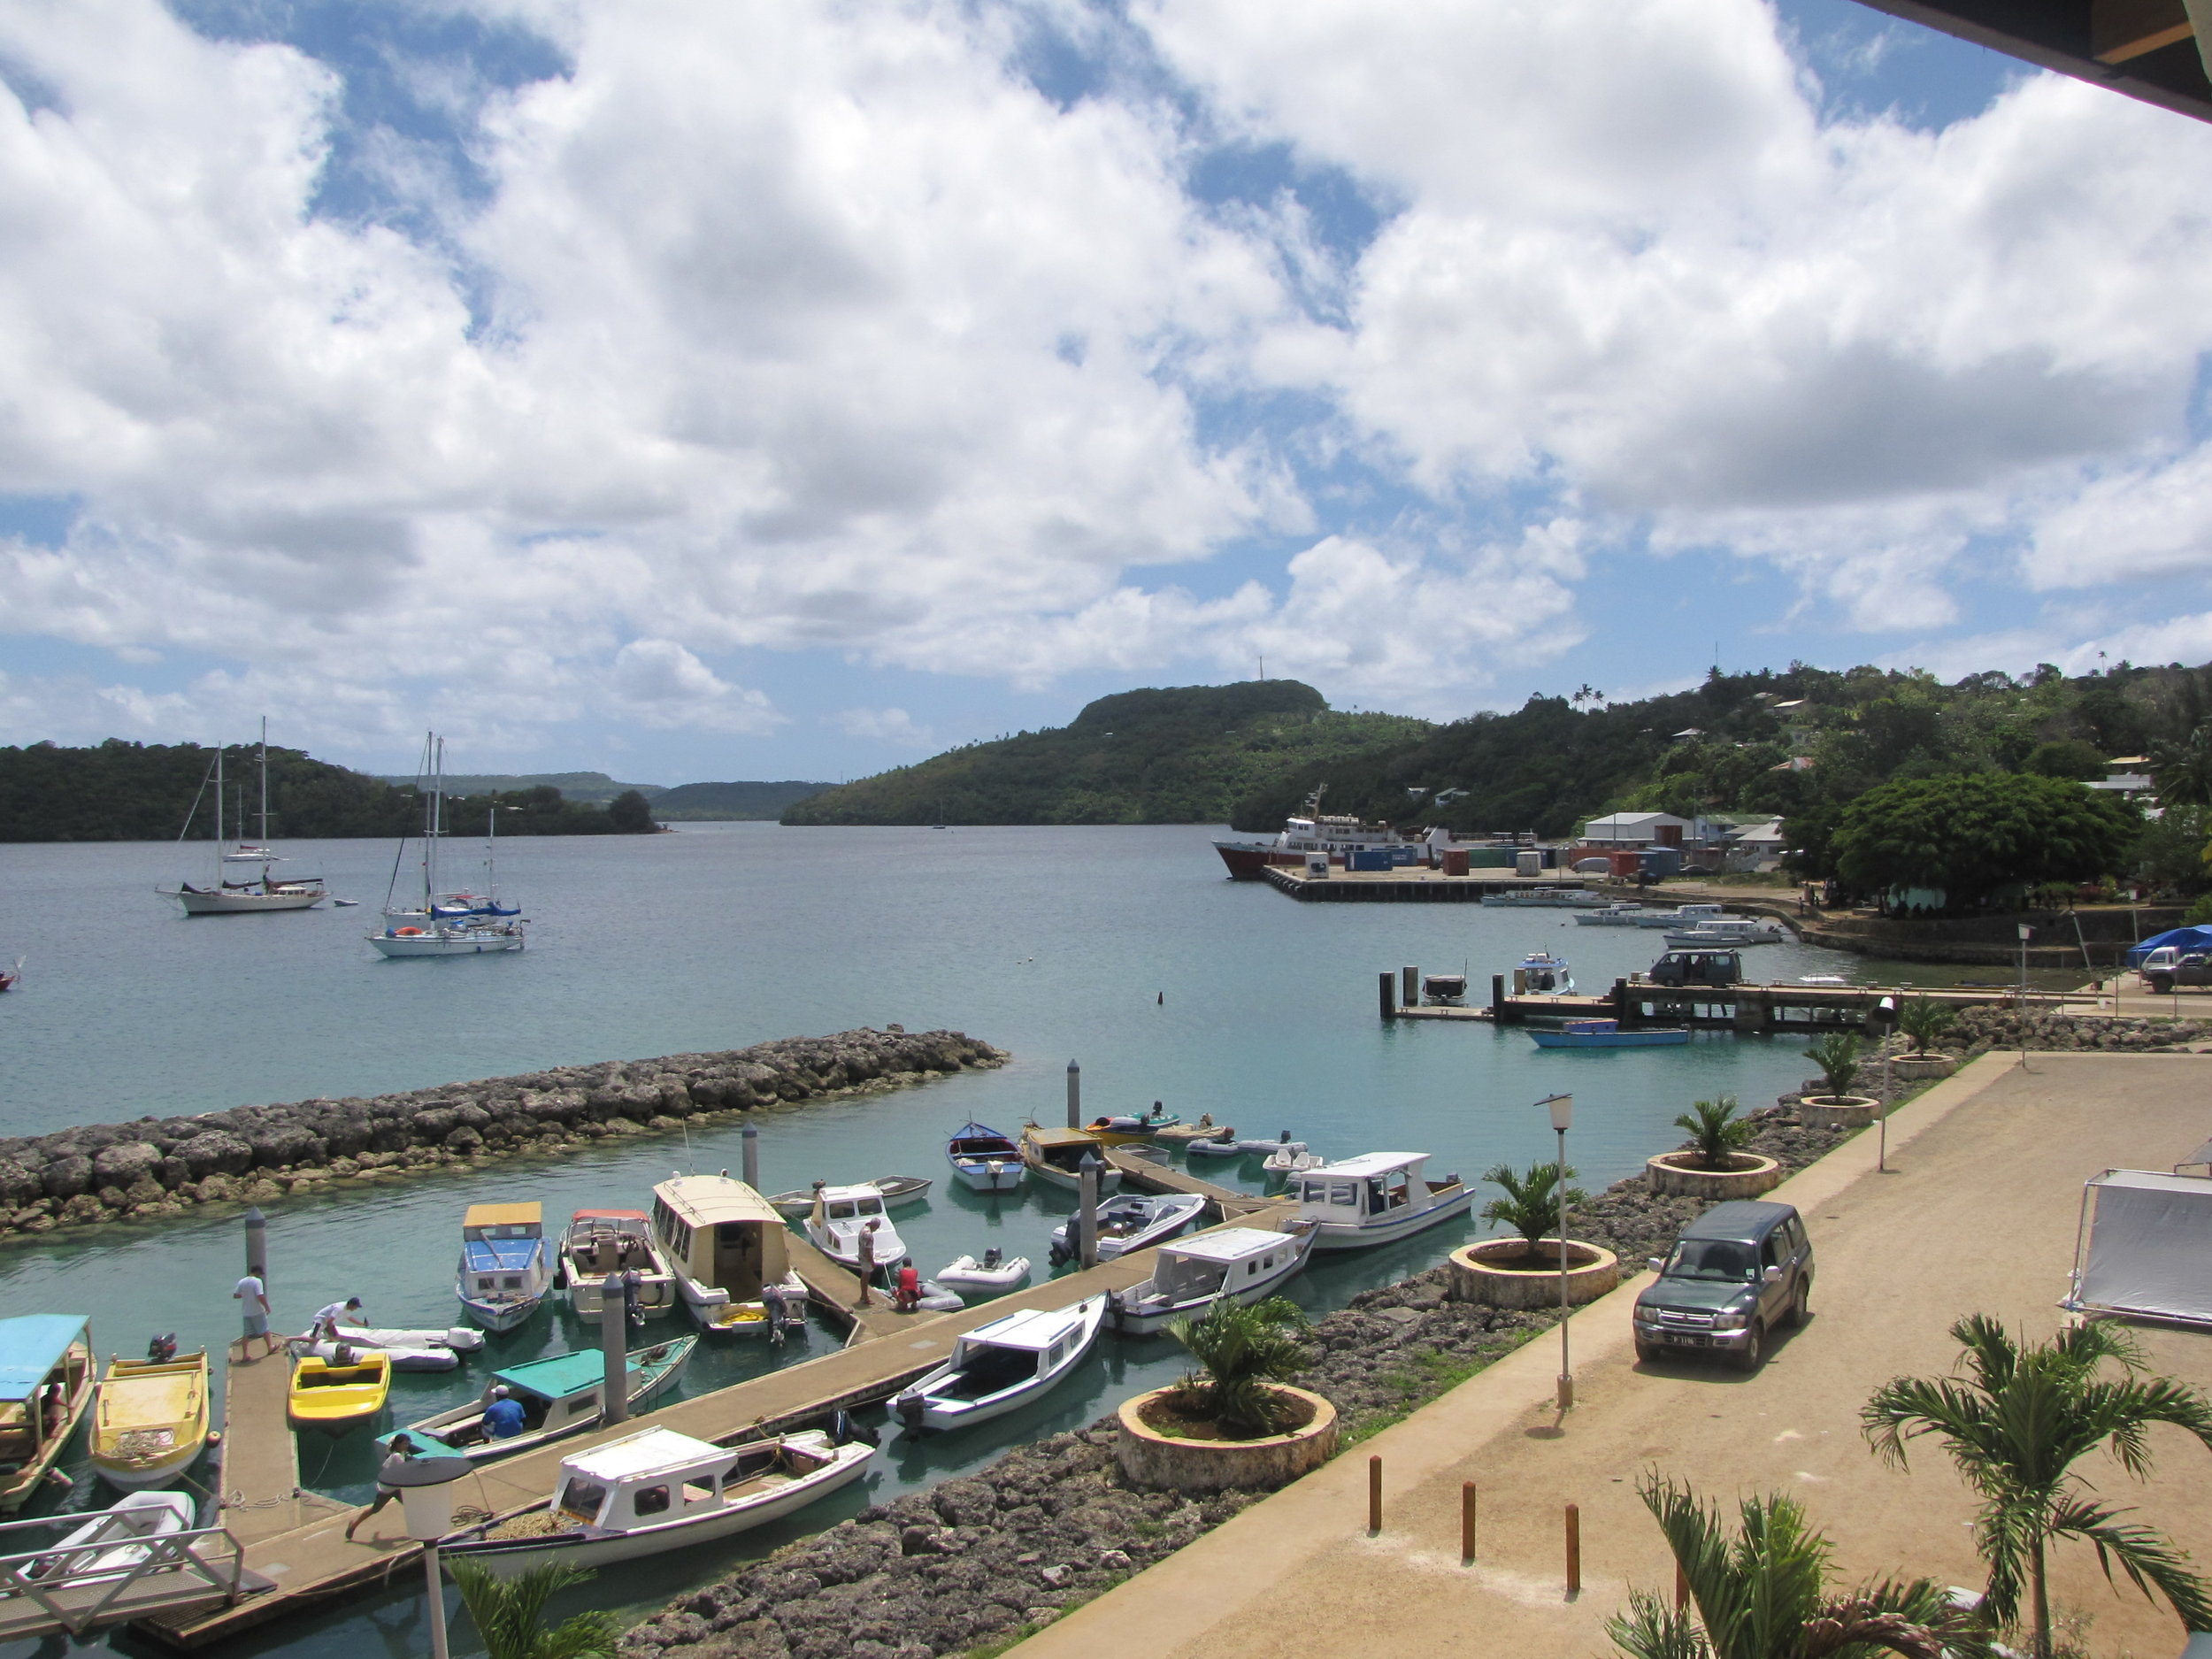 The anchorage in Neiafu was calm, protected and everything we imagined a South Pacific port of call should be.